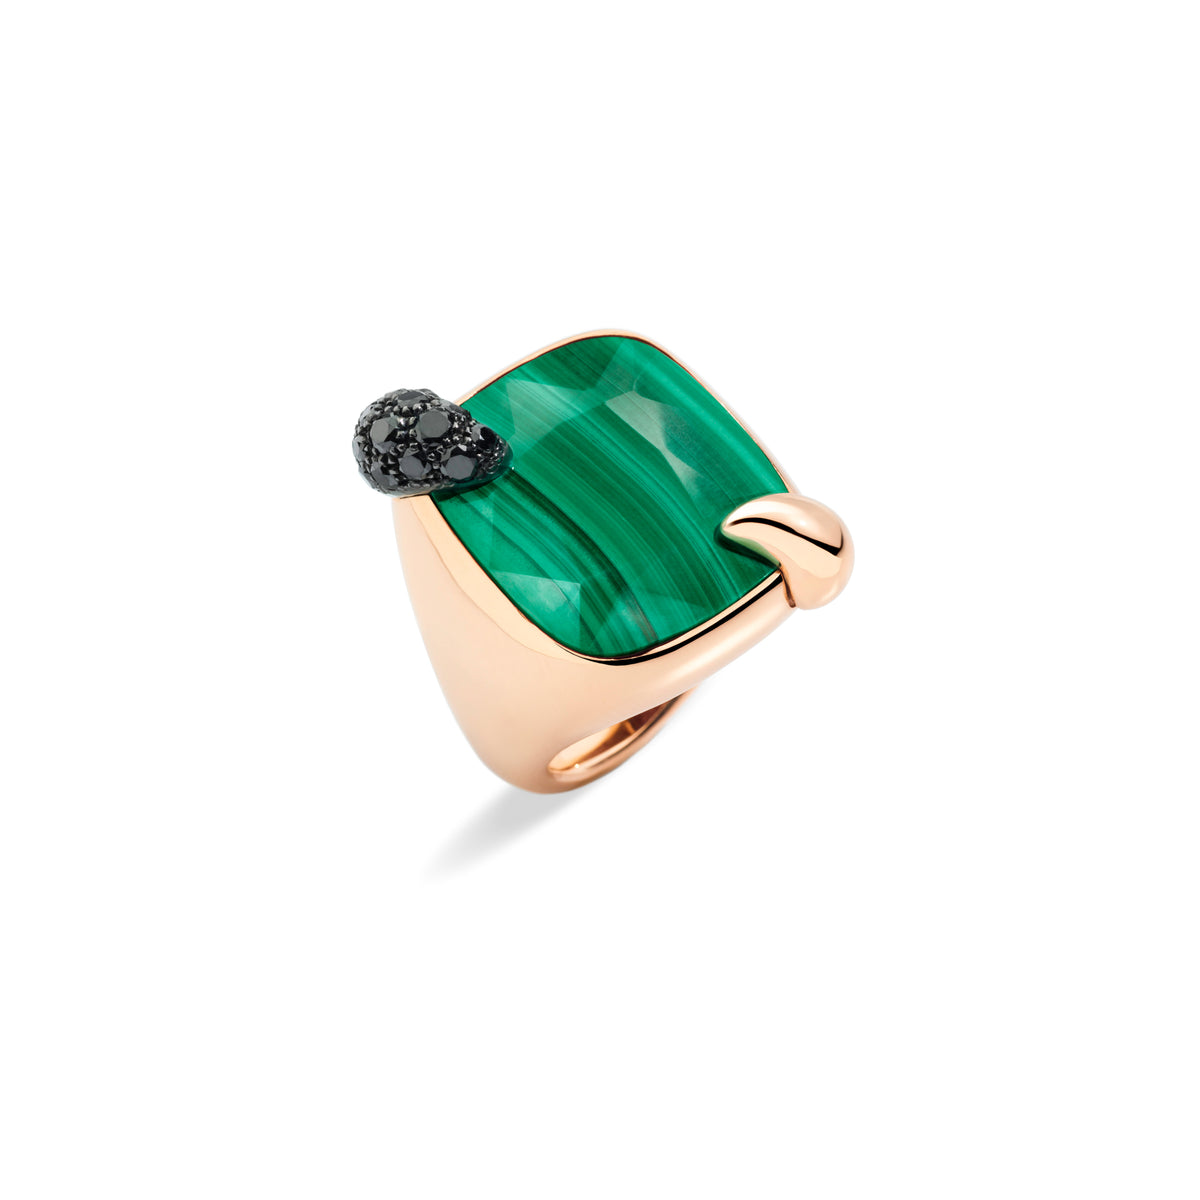 Ritratto Ring in 18k Rose Gold with Malachite and Black Diamonds - Orsini Jewellers NZ